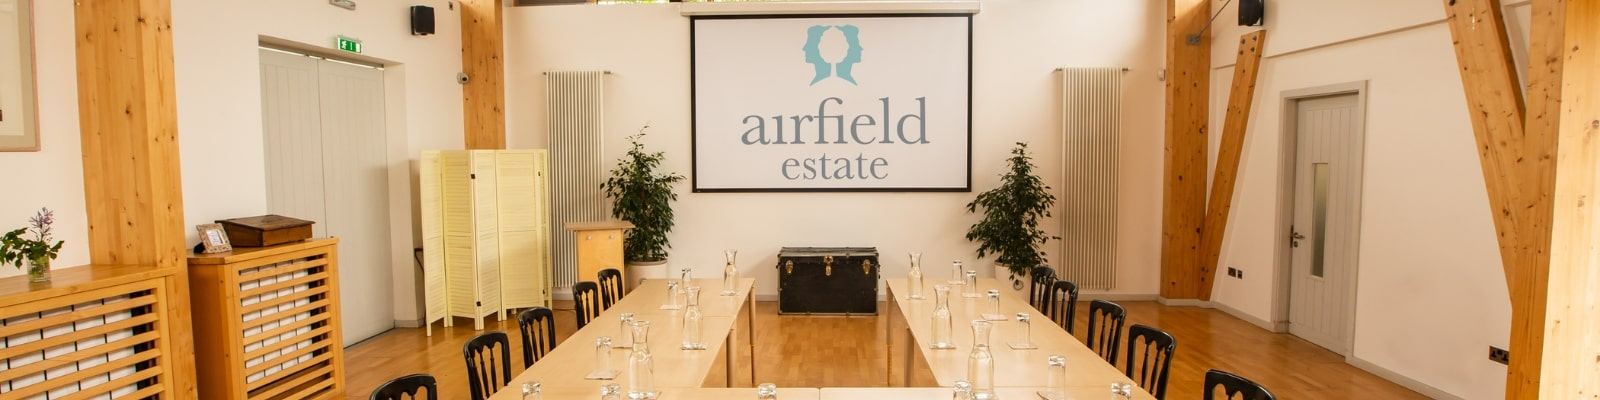 https://www.airfield.ie/wp-content/uploads/2019/06/U-shaped-style-meetings-at-Airfield-Estate-min.jpg